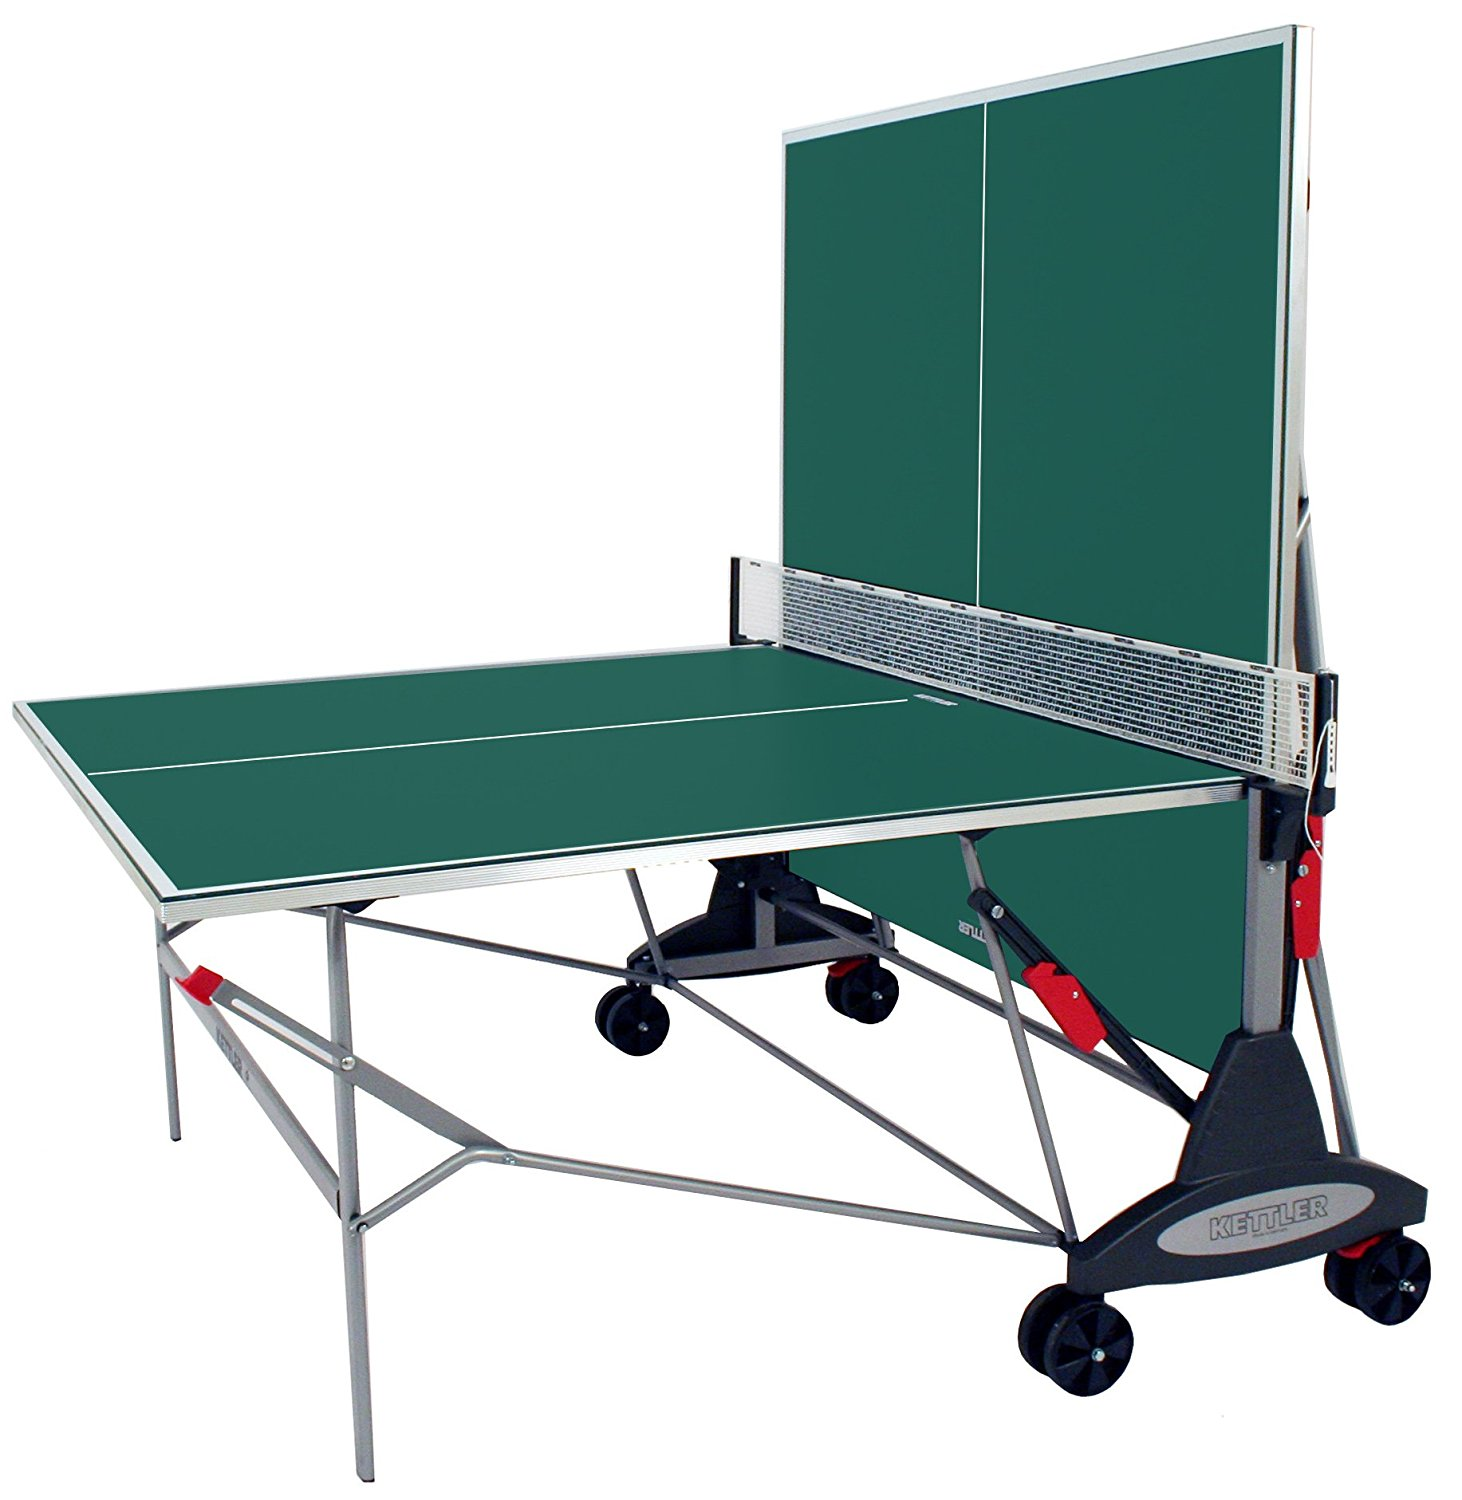 Kettler Stockholm Gt Outdoor Best Outdoor Ping Pong Tables